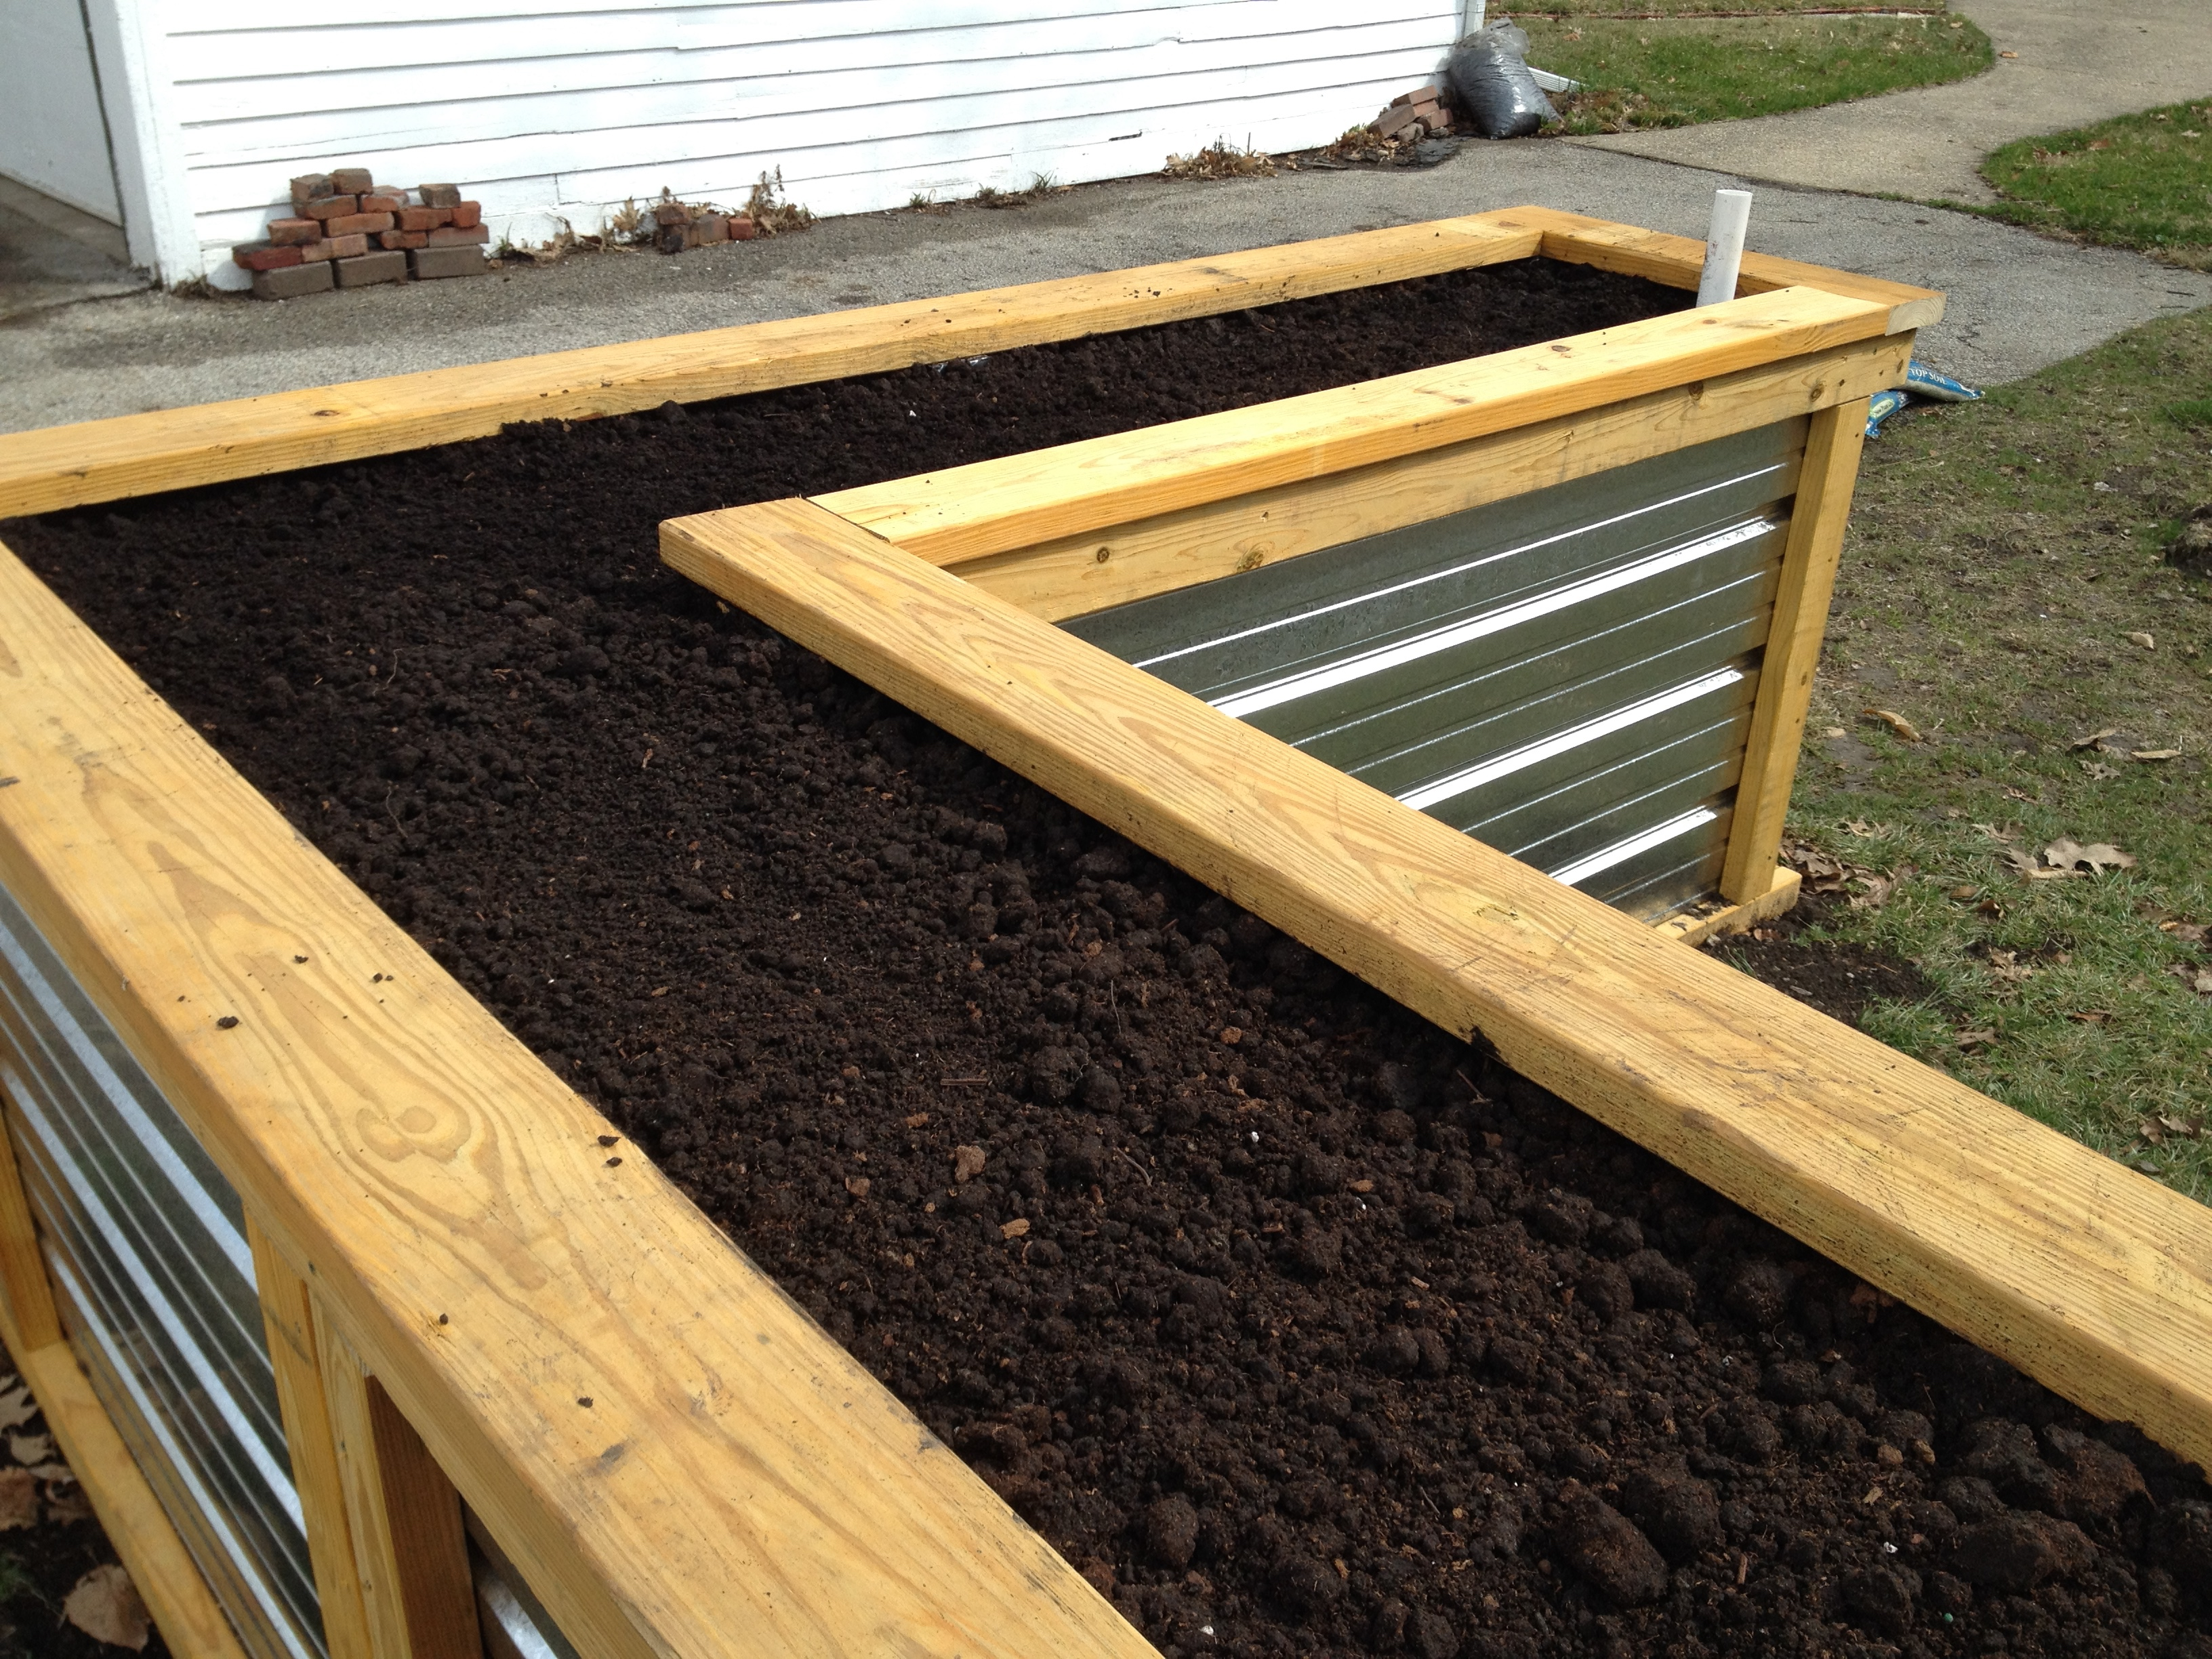 Make Self Watering Planters Building A Self Watering Raised Garden Bed Frugal Living